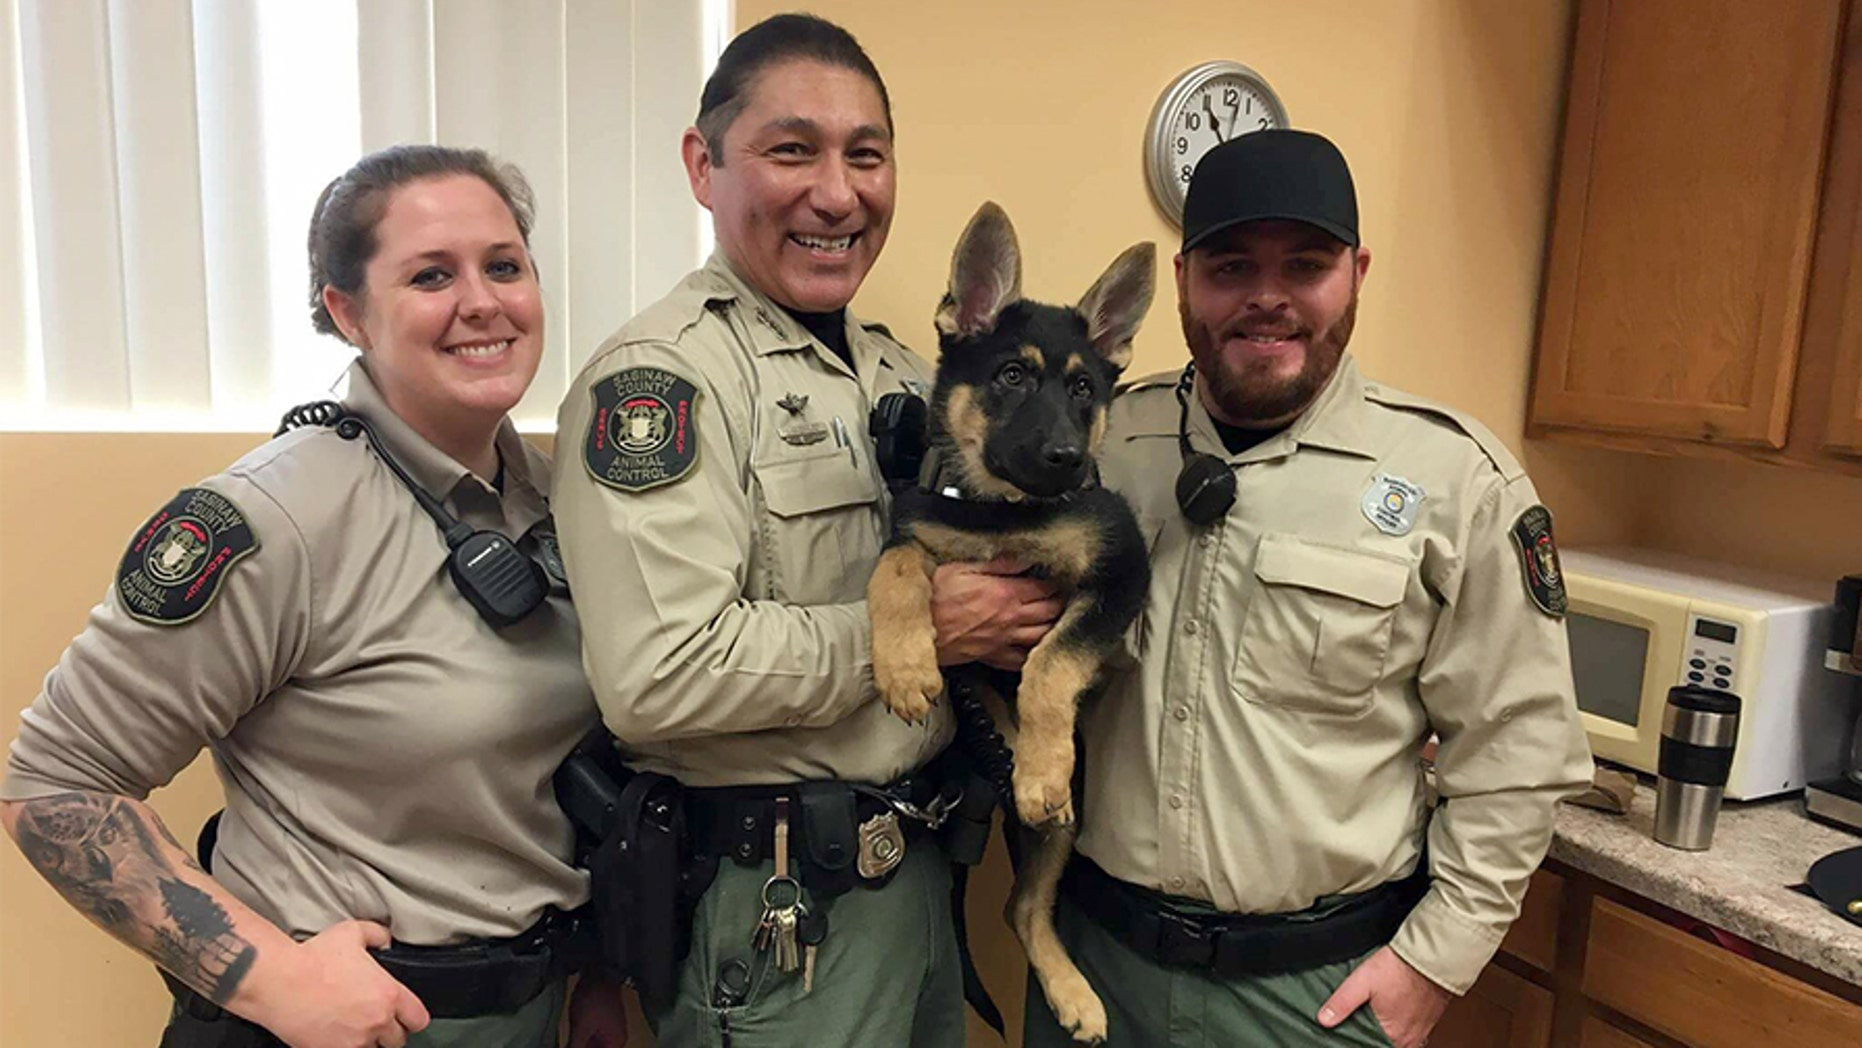 From left to right, Officer Trish Barnes, Officer Joaquin Guerrero and Officer Anthony Trevino will sleep outside on Jan. 12 to raise awareness of the dangers animals face when they're left outside for long periods of time. Seen with them is Guerrero's canine partner, Little Chief.